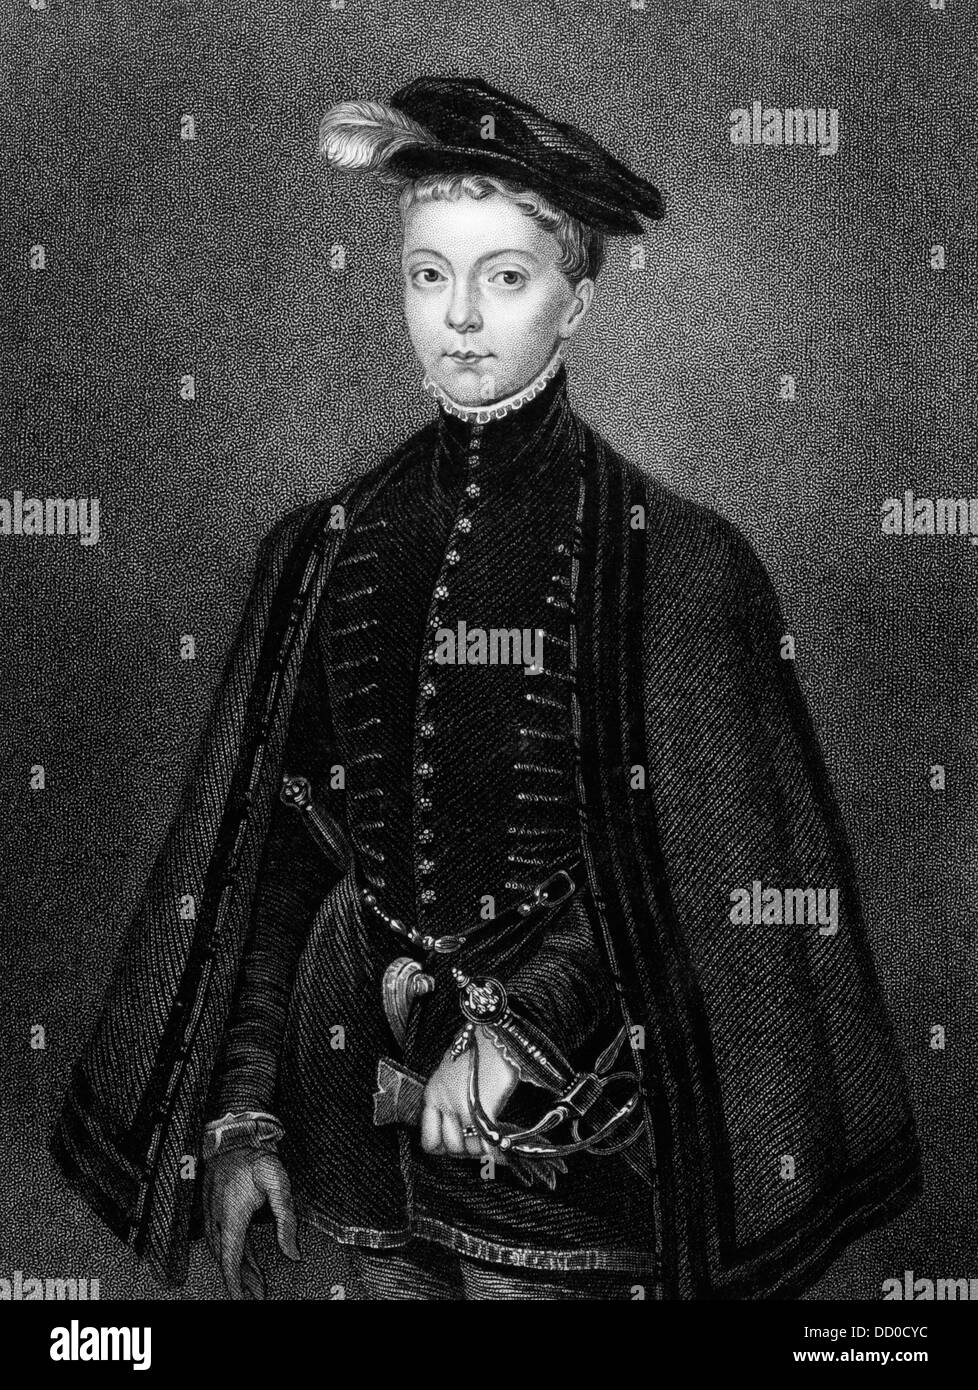 Lord Darnley Stock Photos & Lord Darnley Stock Images - Alamy